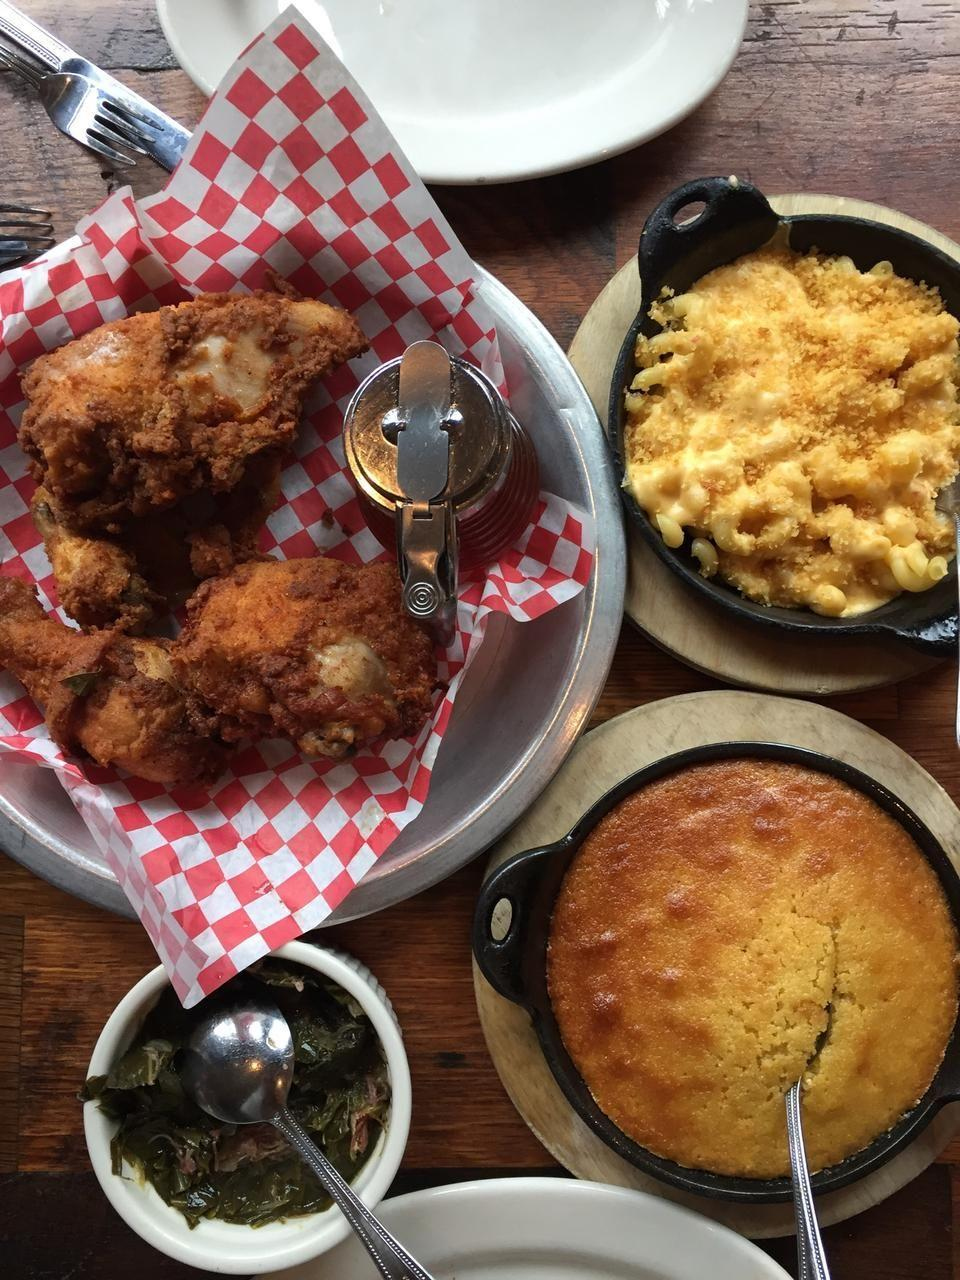 """<p><a href=""""https://www.tripadvisor.com/Restaurant_Review-g60993-d6481795-Reviews-The_Eagle_Food_and_Beer_Hall-Cincinnati_Ohio.html"""" rel=""""nofollow noopener"""" target=""""_blank"""" data-ylk=""""slk:The Eagle OTR"""" class=""""link rapid-noclick-resp"""">The Eagle OTR</a>, Cincinnati</p><p>One of my favorite restaurants in the beautiful Over-the-Rhine district. Phenomenal dark chicken, must try their honey as it has a spicy kick along with Mac 'n' cheese, spoon bread and a Rhinegeist!<span class=""""redactor-invisible-space""""> - Foursquare user <a href=""""https://foursquare.com/erikallyn"""" rel=""""nofollow noopener"""" target=""""_blank"""" data-ylk=""""slk:Erik Rowley"""" class=""""link rapid-noclick-resp"""">Erik Rowley</a></span></p>"""